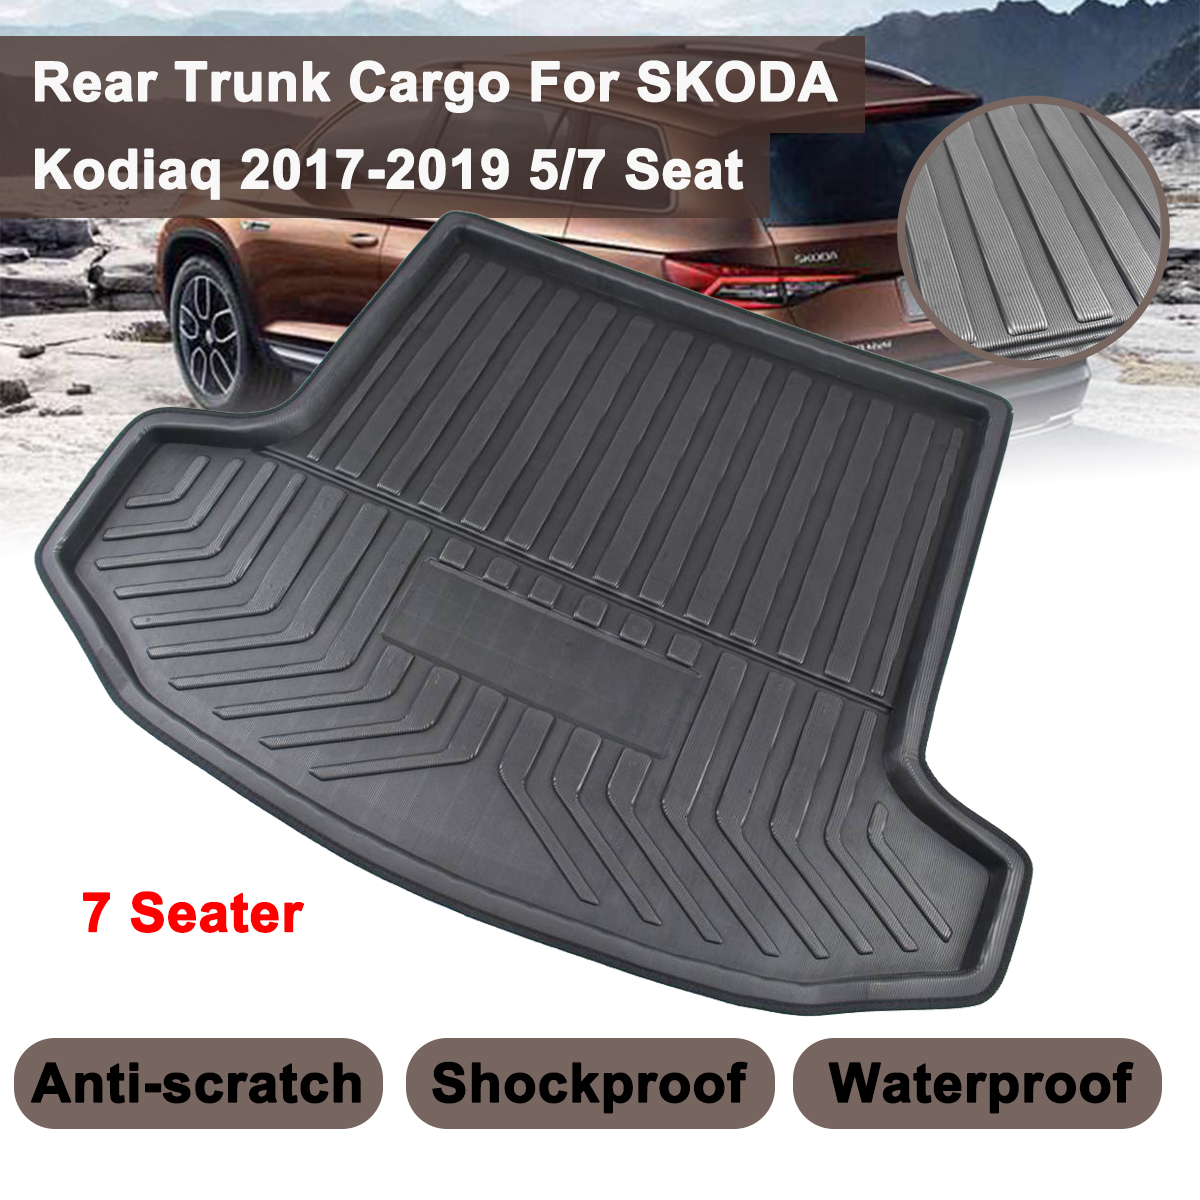 For SKODA Kodiaq 5 7 Seat Seater 2017 2018 2019 Matt Mat Floor Carpet Kick Pad Car Cargo Liner Boot Tray Rear Trunk Cover